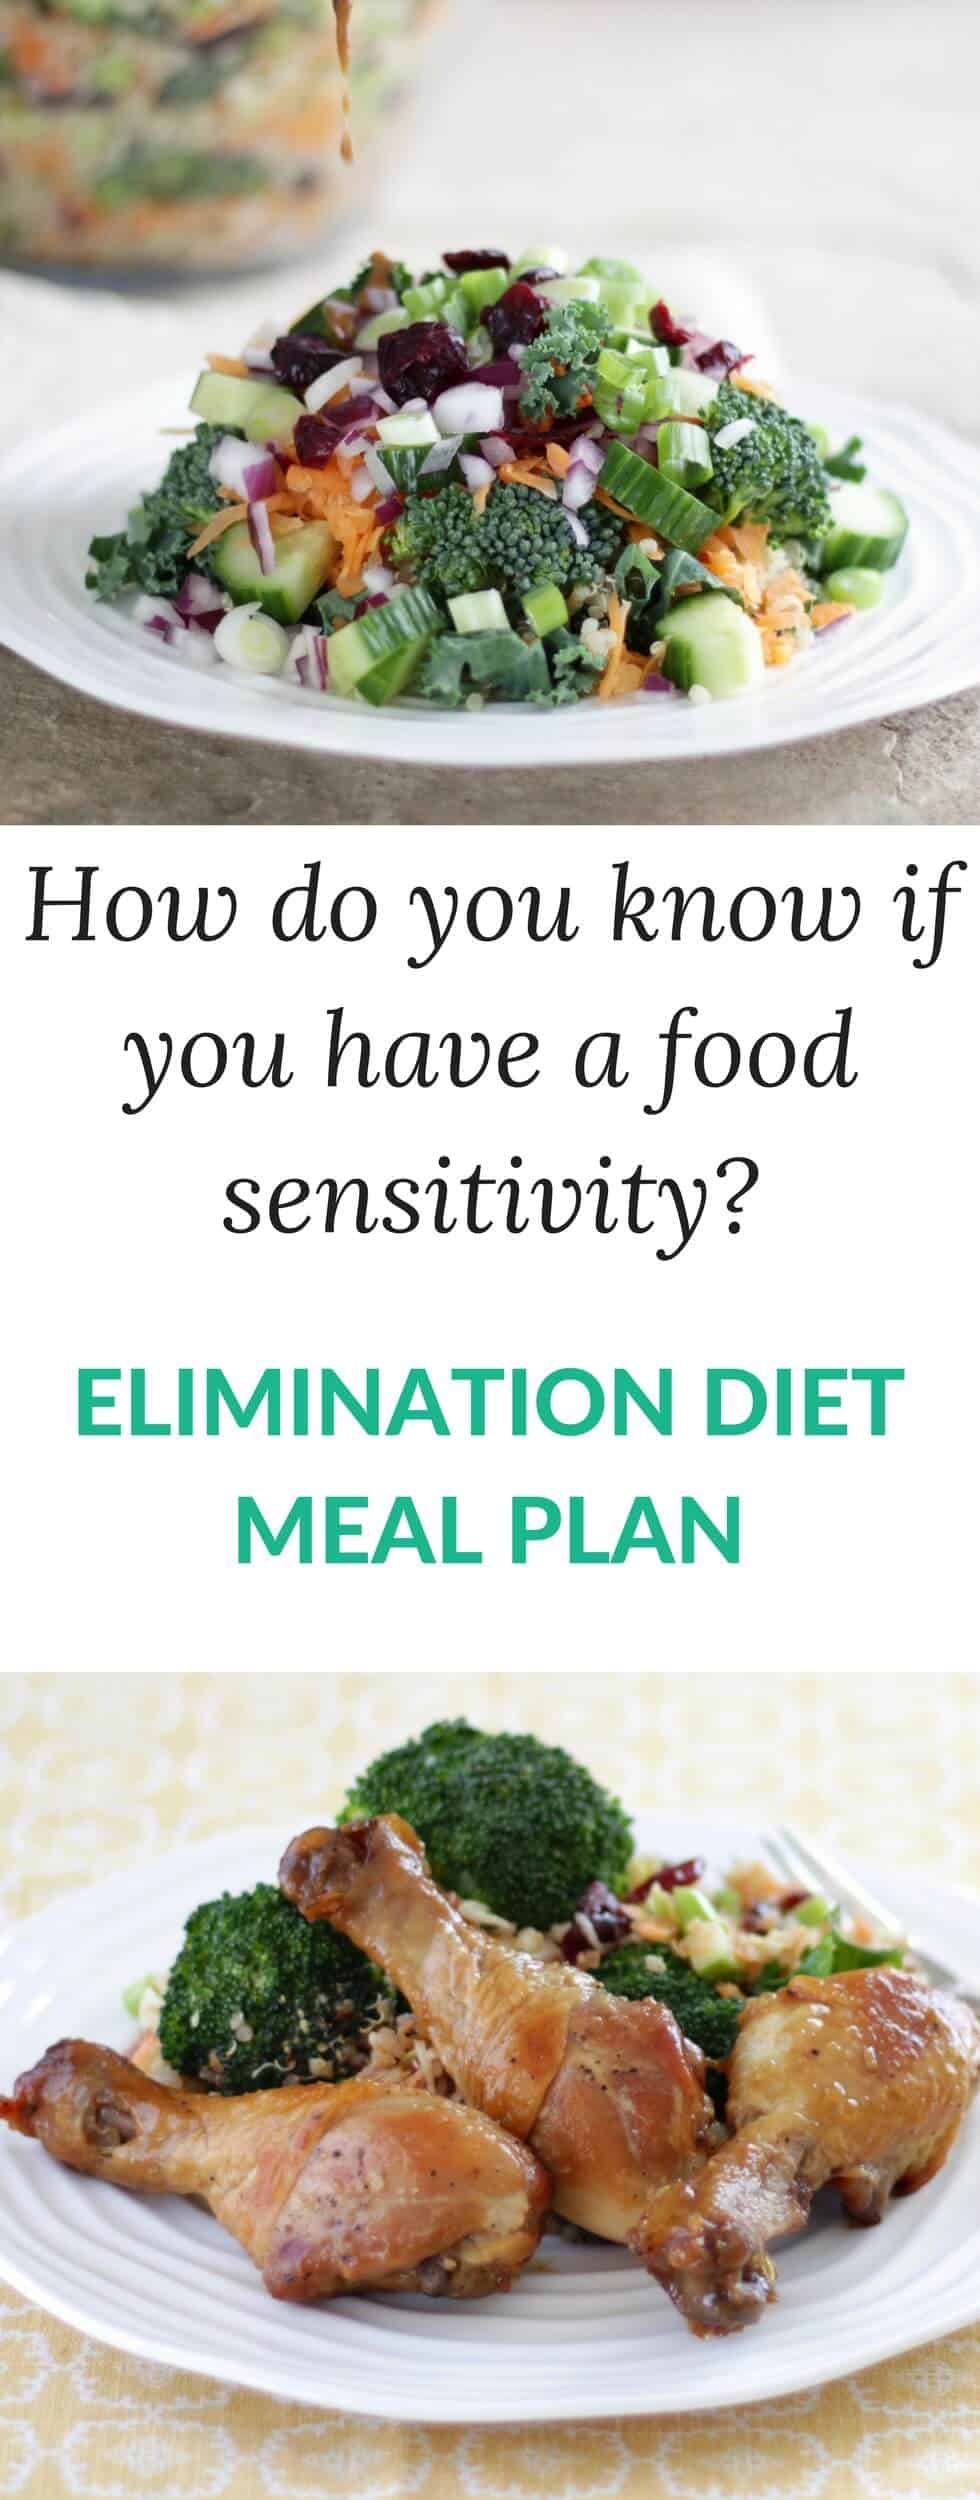 How do you know if you have a food sensitivity?